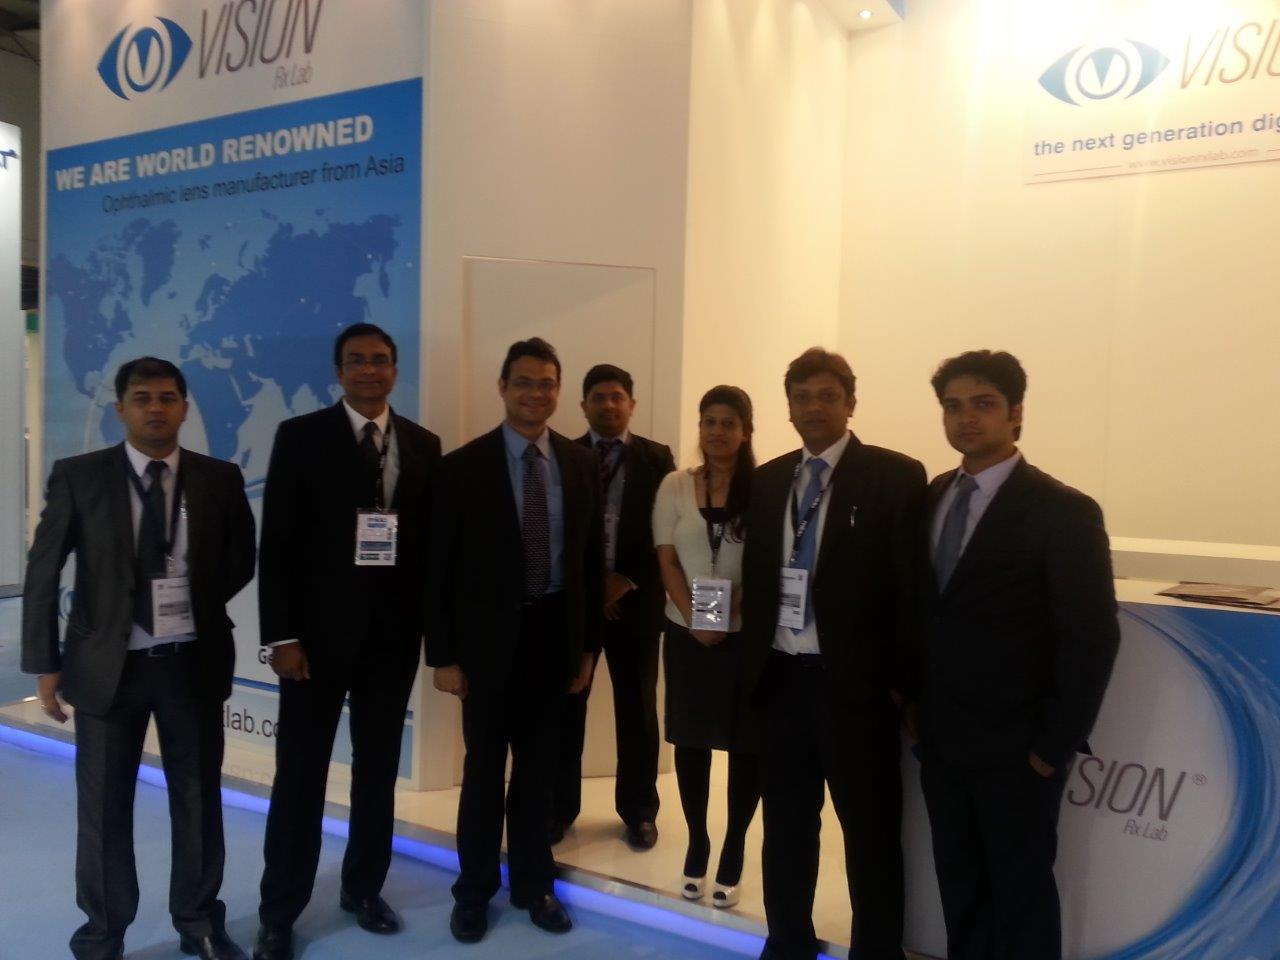 0e8ddef374 Vision Rx Lab At MIDO 2014March 2014